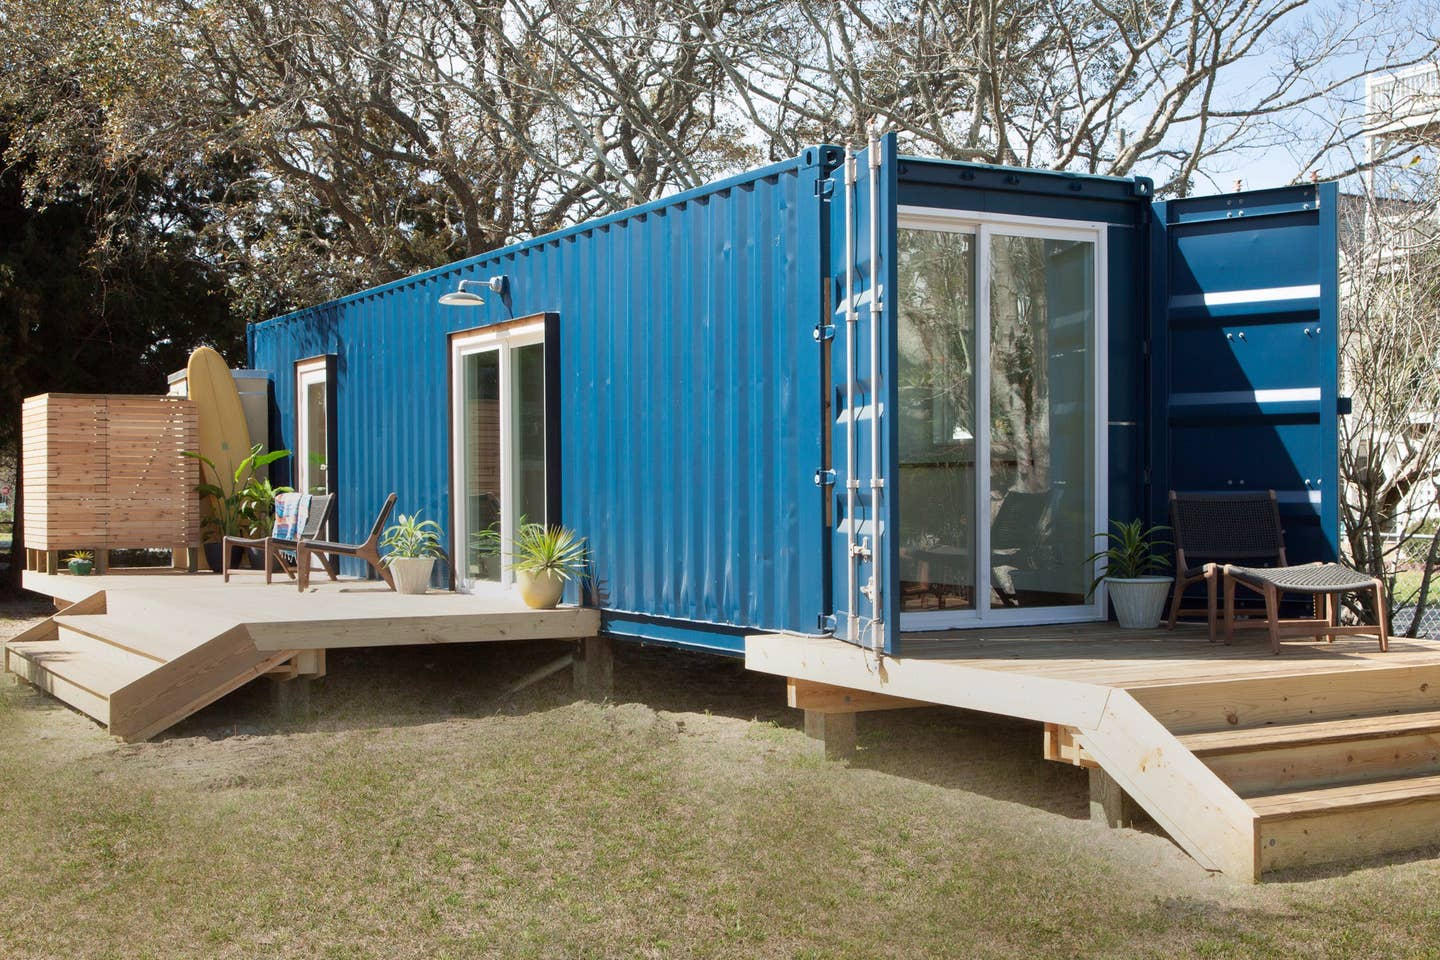 Most Unique USA Airbnbs Modern shipping container tiny home North Carolina Beach